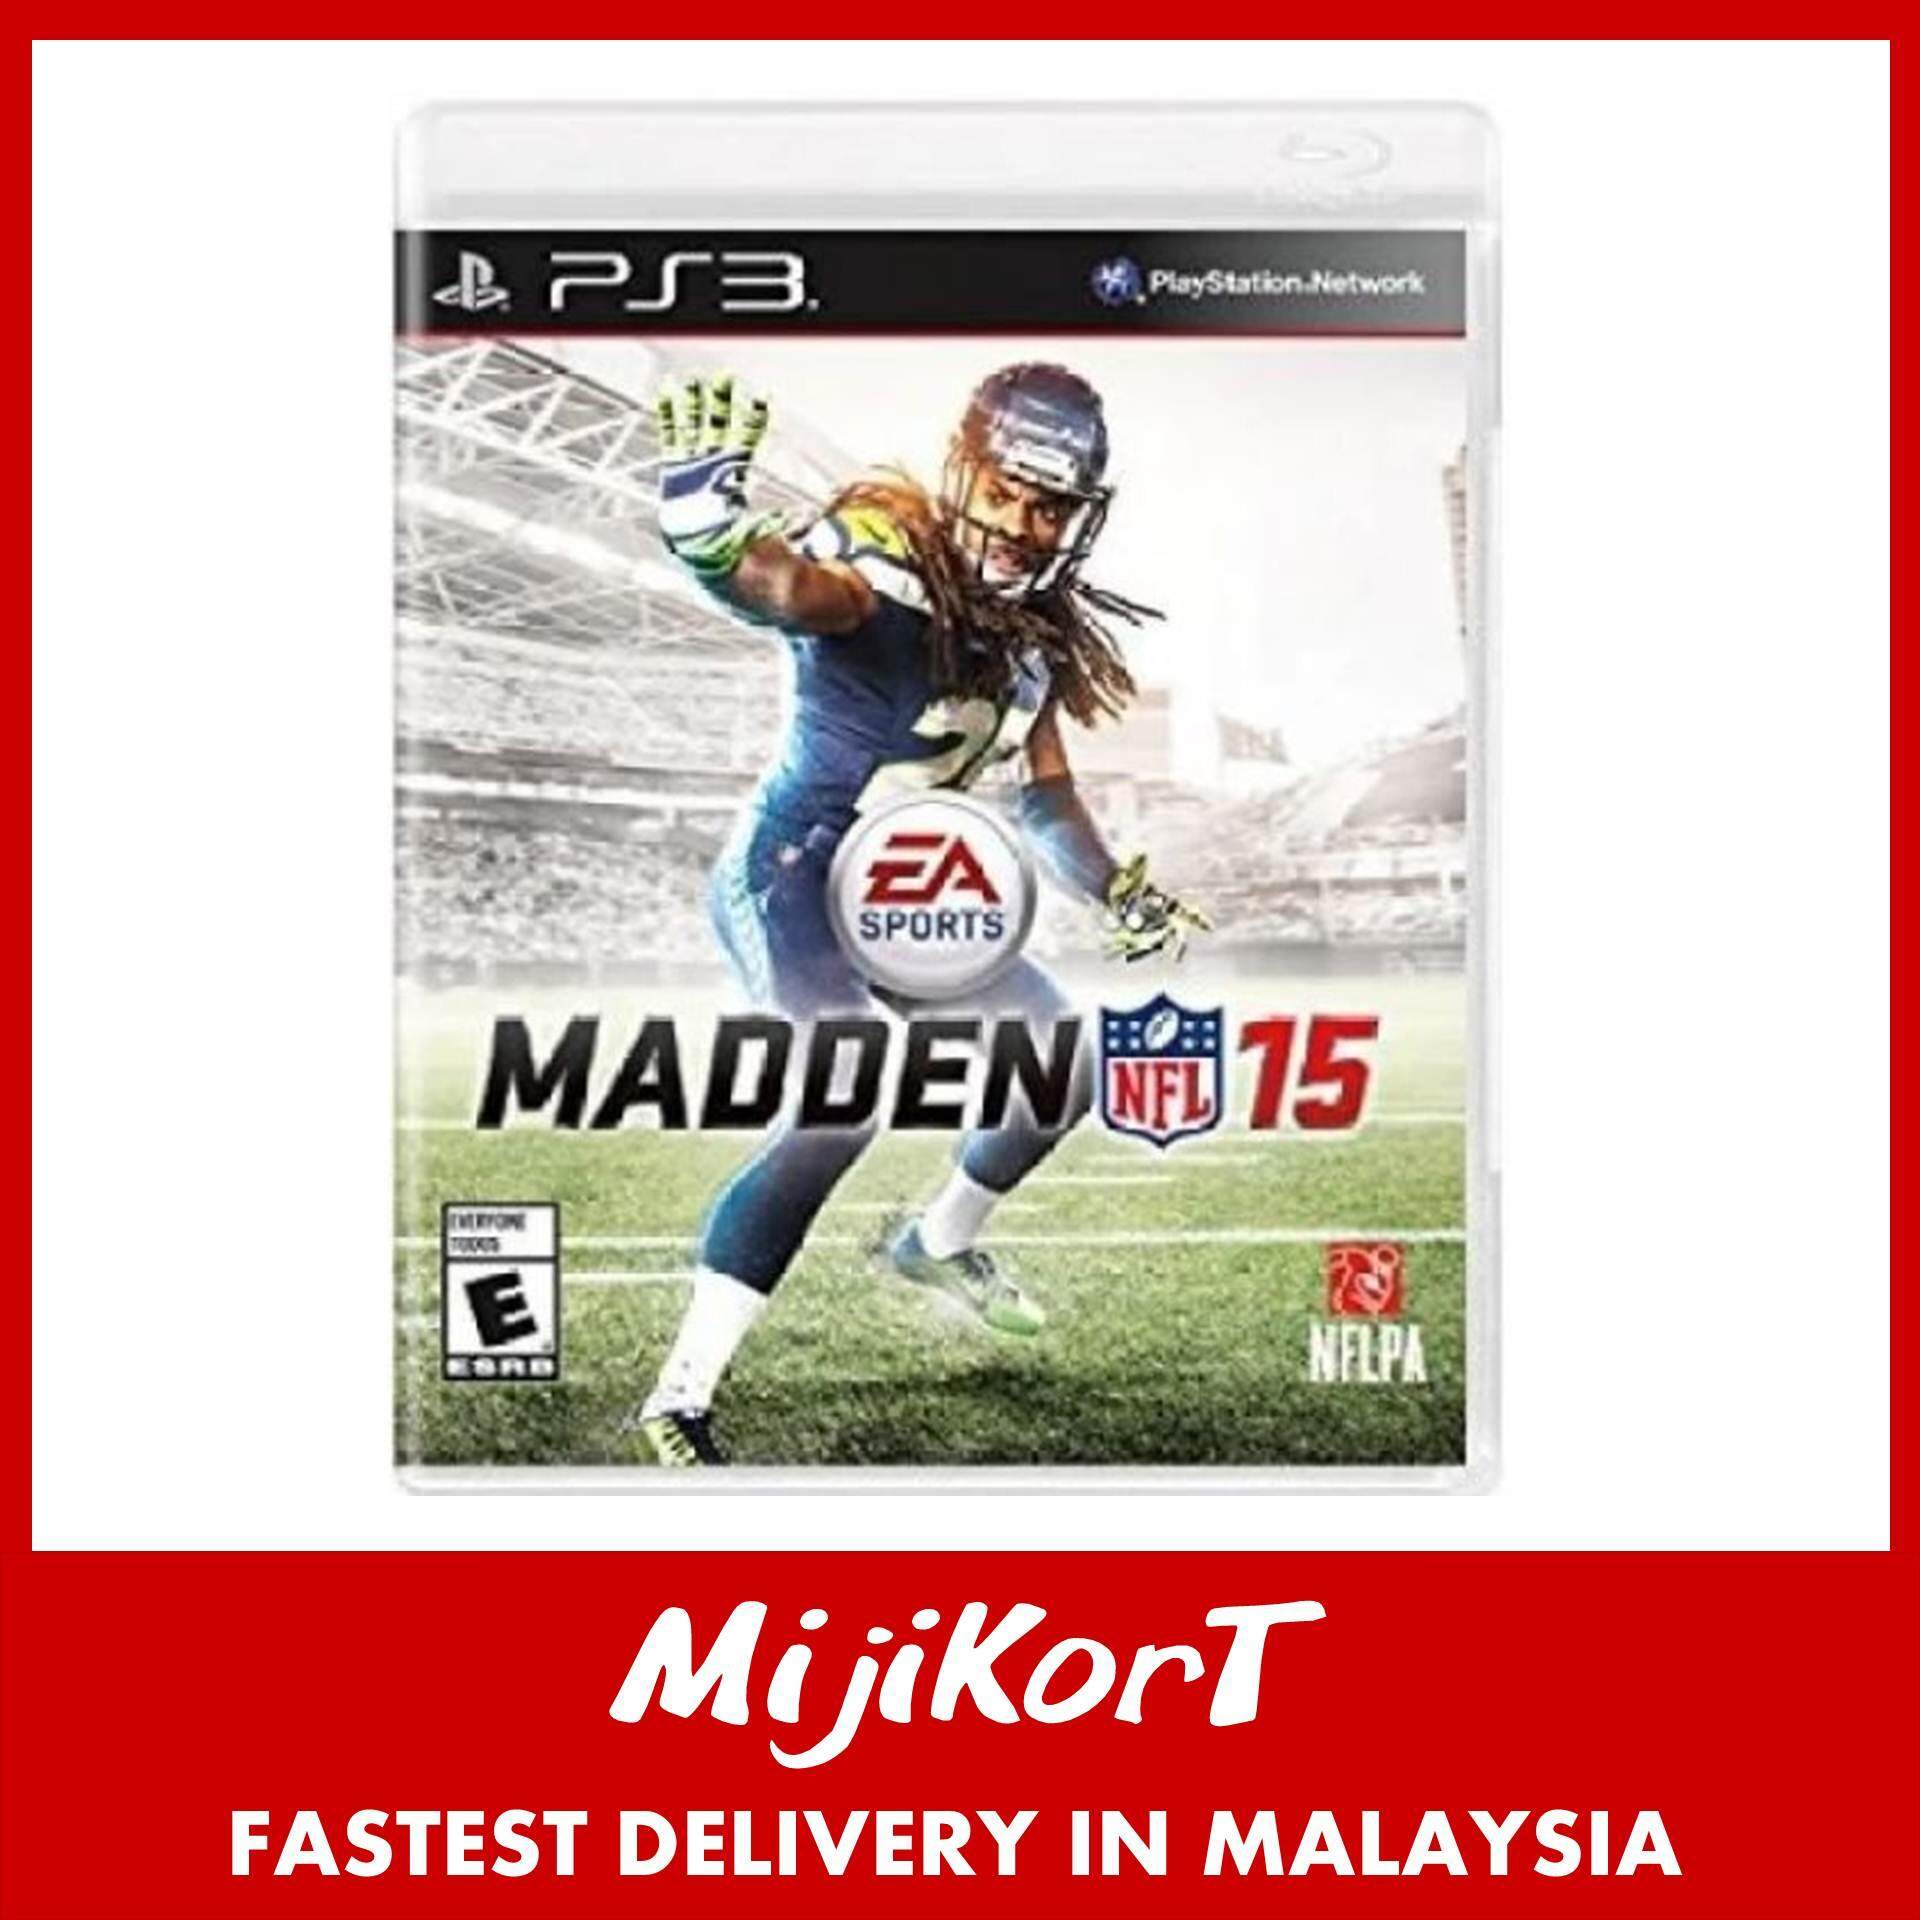 Electronic Arts Madden NFL 15 PS3 Image